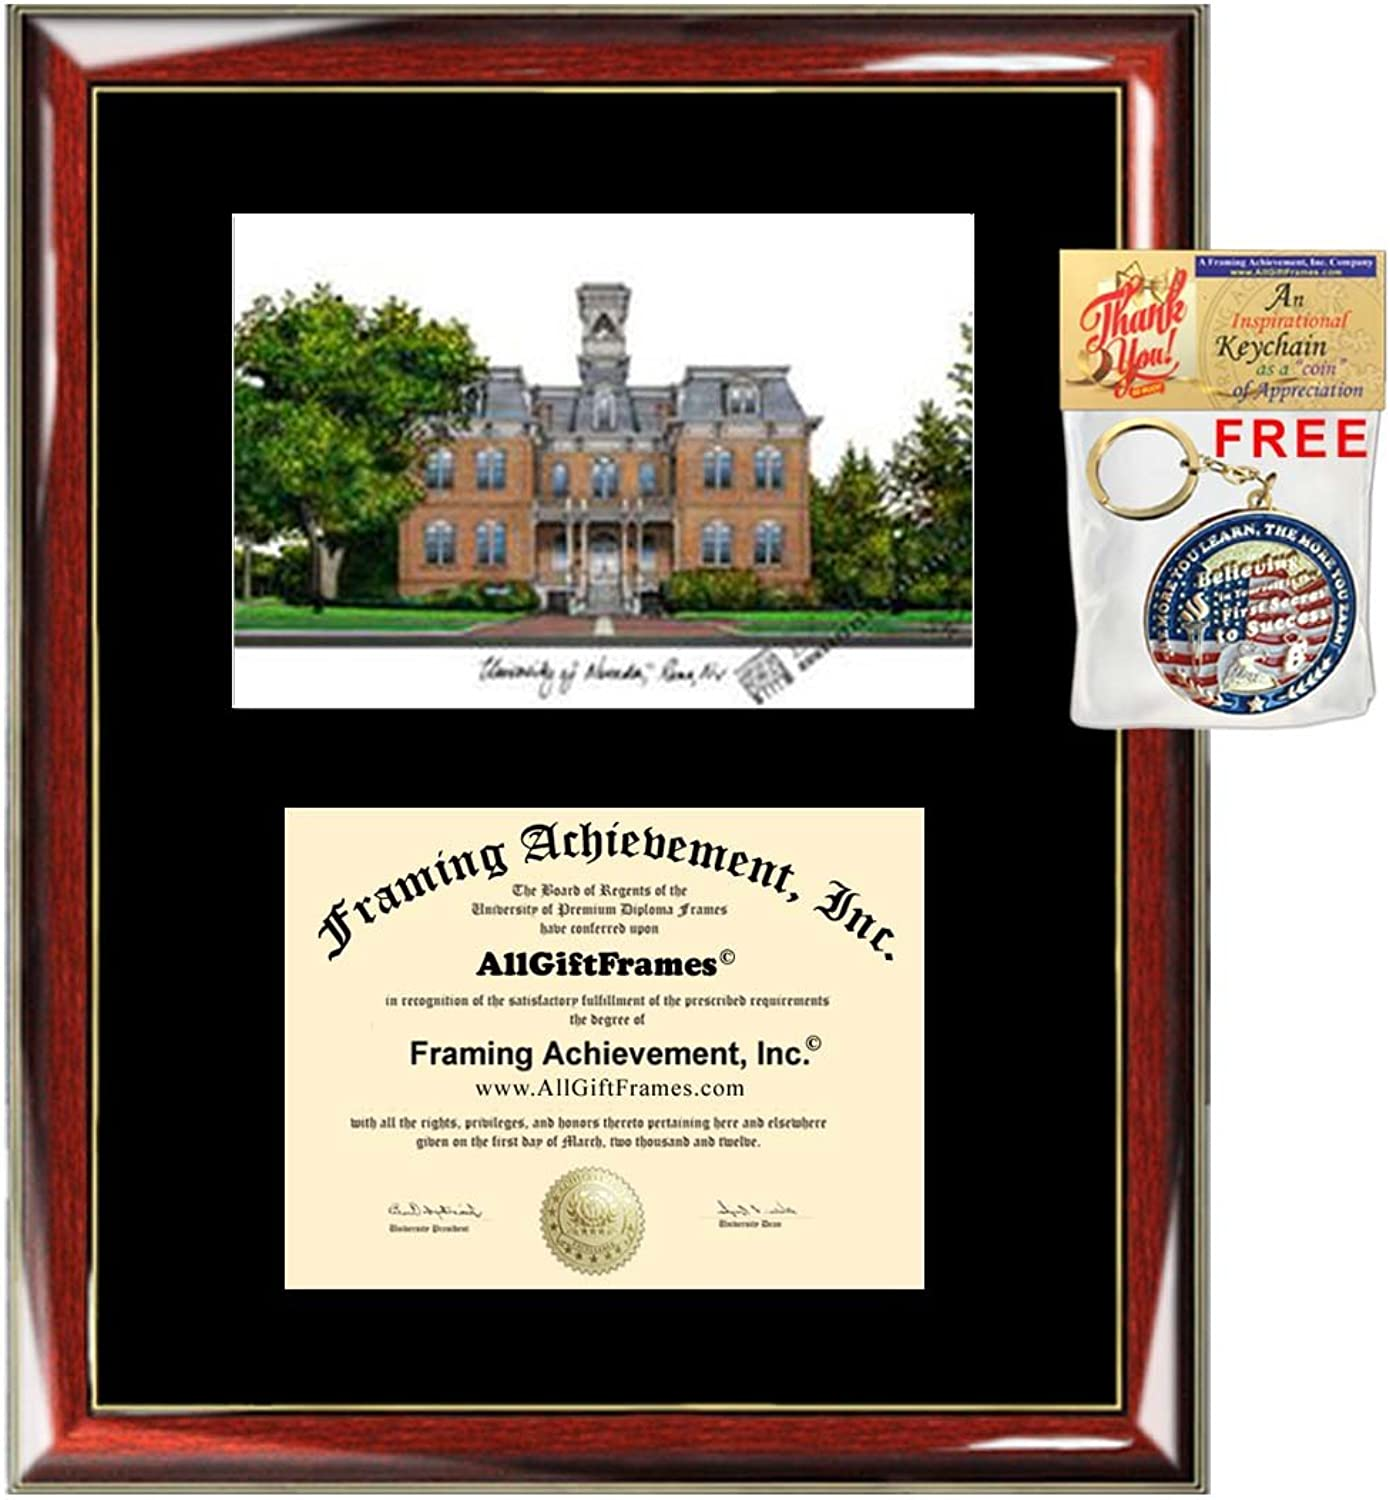 University of Accents Frame Diploma University Mat Black ... on west wing map, uccs university of colorado spring, colorado springs map, national art gallery map, university college cork ireland map, uccs soccer, uccs dorms, uccs colorado springs co, uccs alpine village, uccs clock tower, uccs student life, uccs writing center, uccs communication center, uccs visitor parking, uccs mountain lions, union county college cranford nj map, uccs recreation center, rochester new york airport map, uccs dwire hall lssc, uccs mascot,